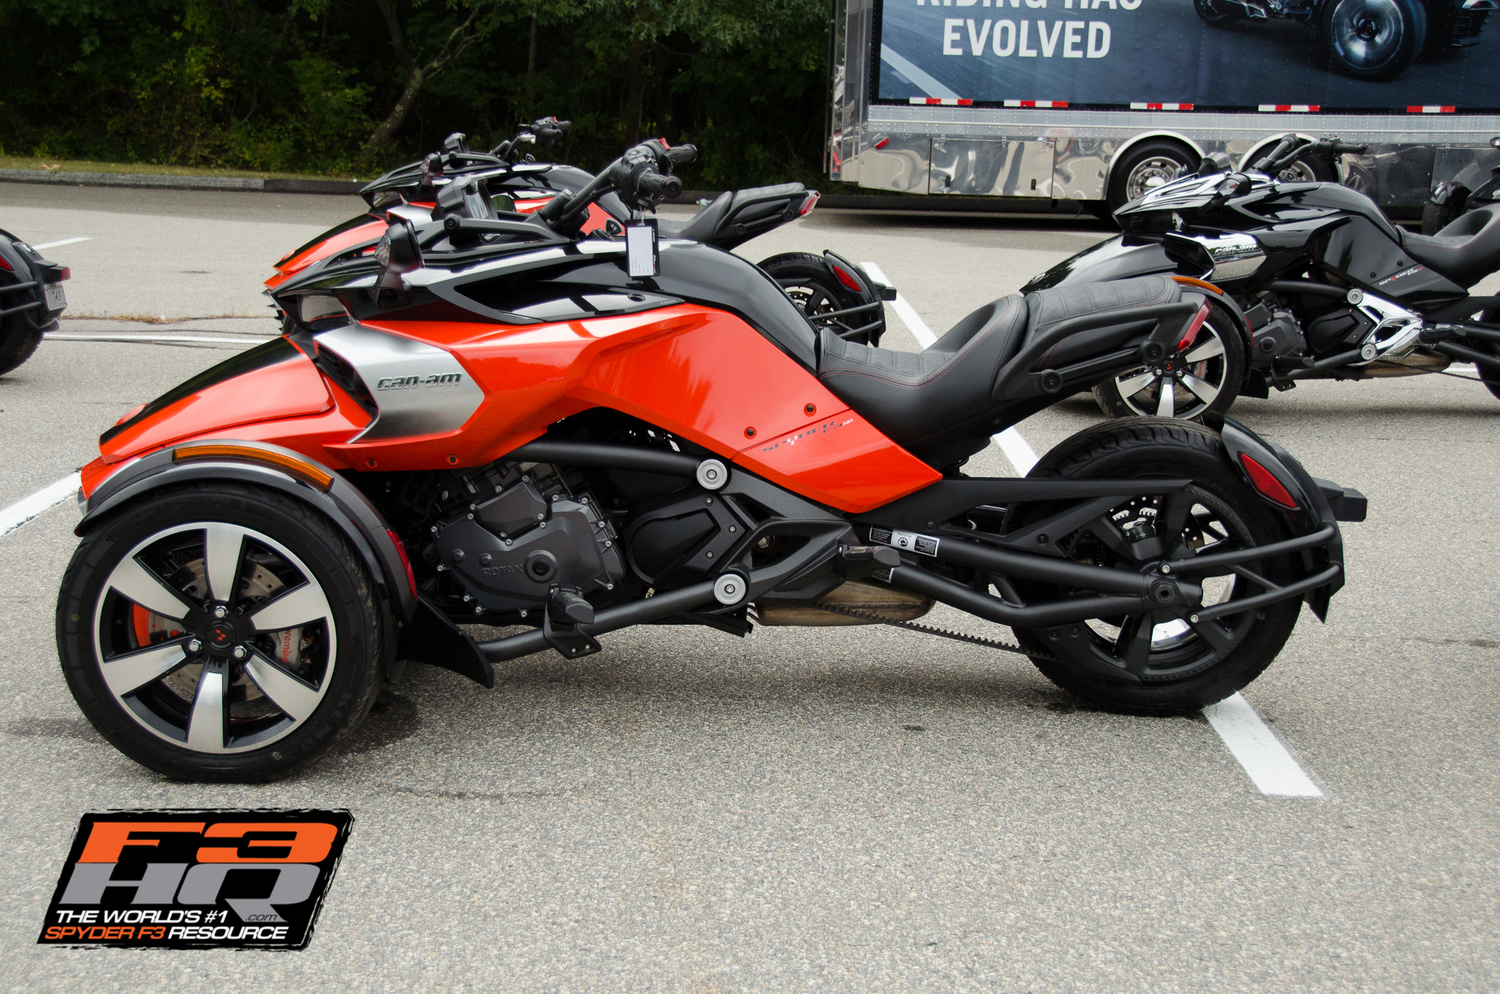 2014 Can-Am Spyder F3 - Product Launch and Ryde-38-28.jpg